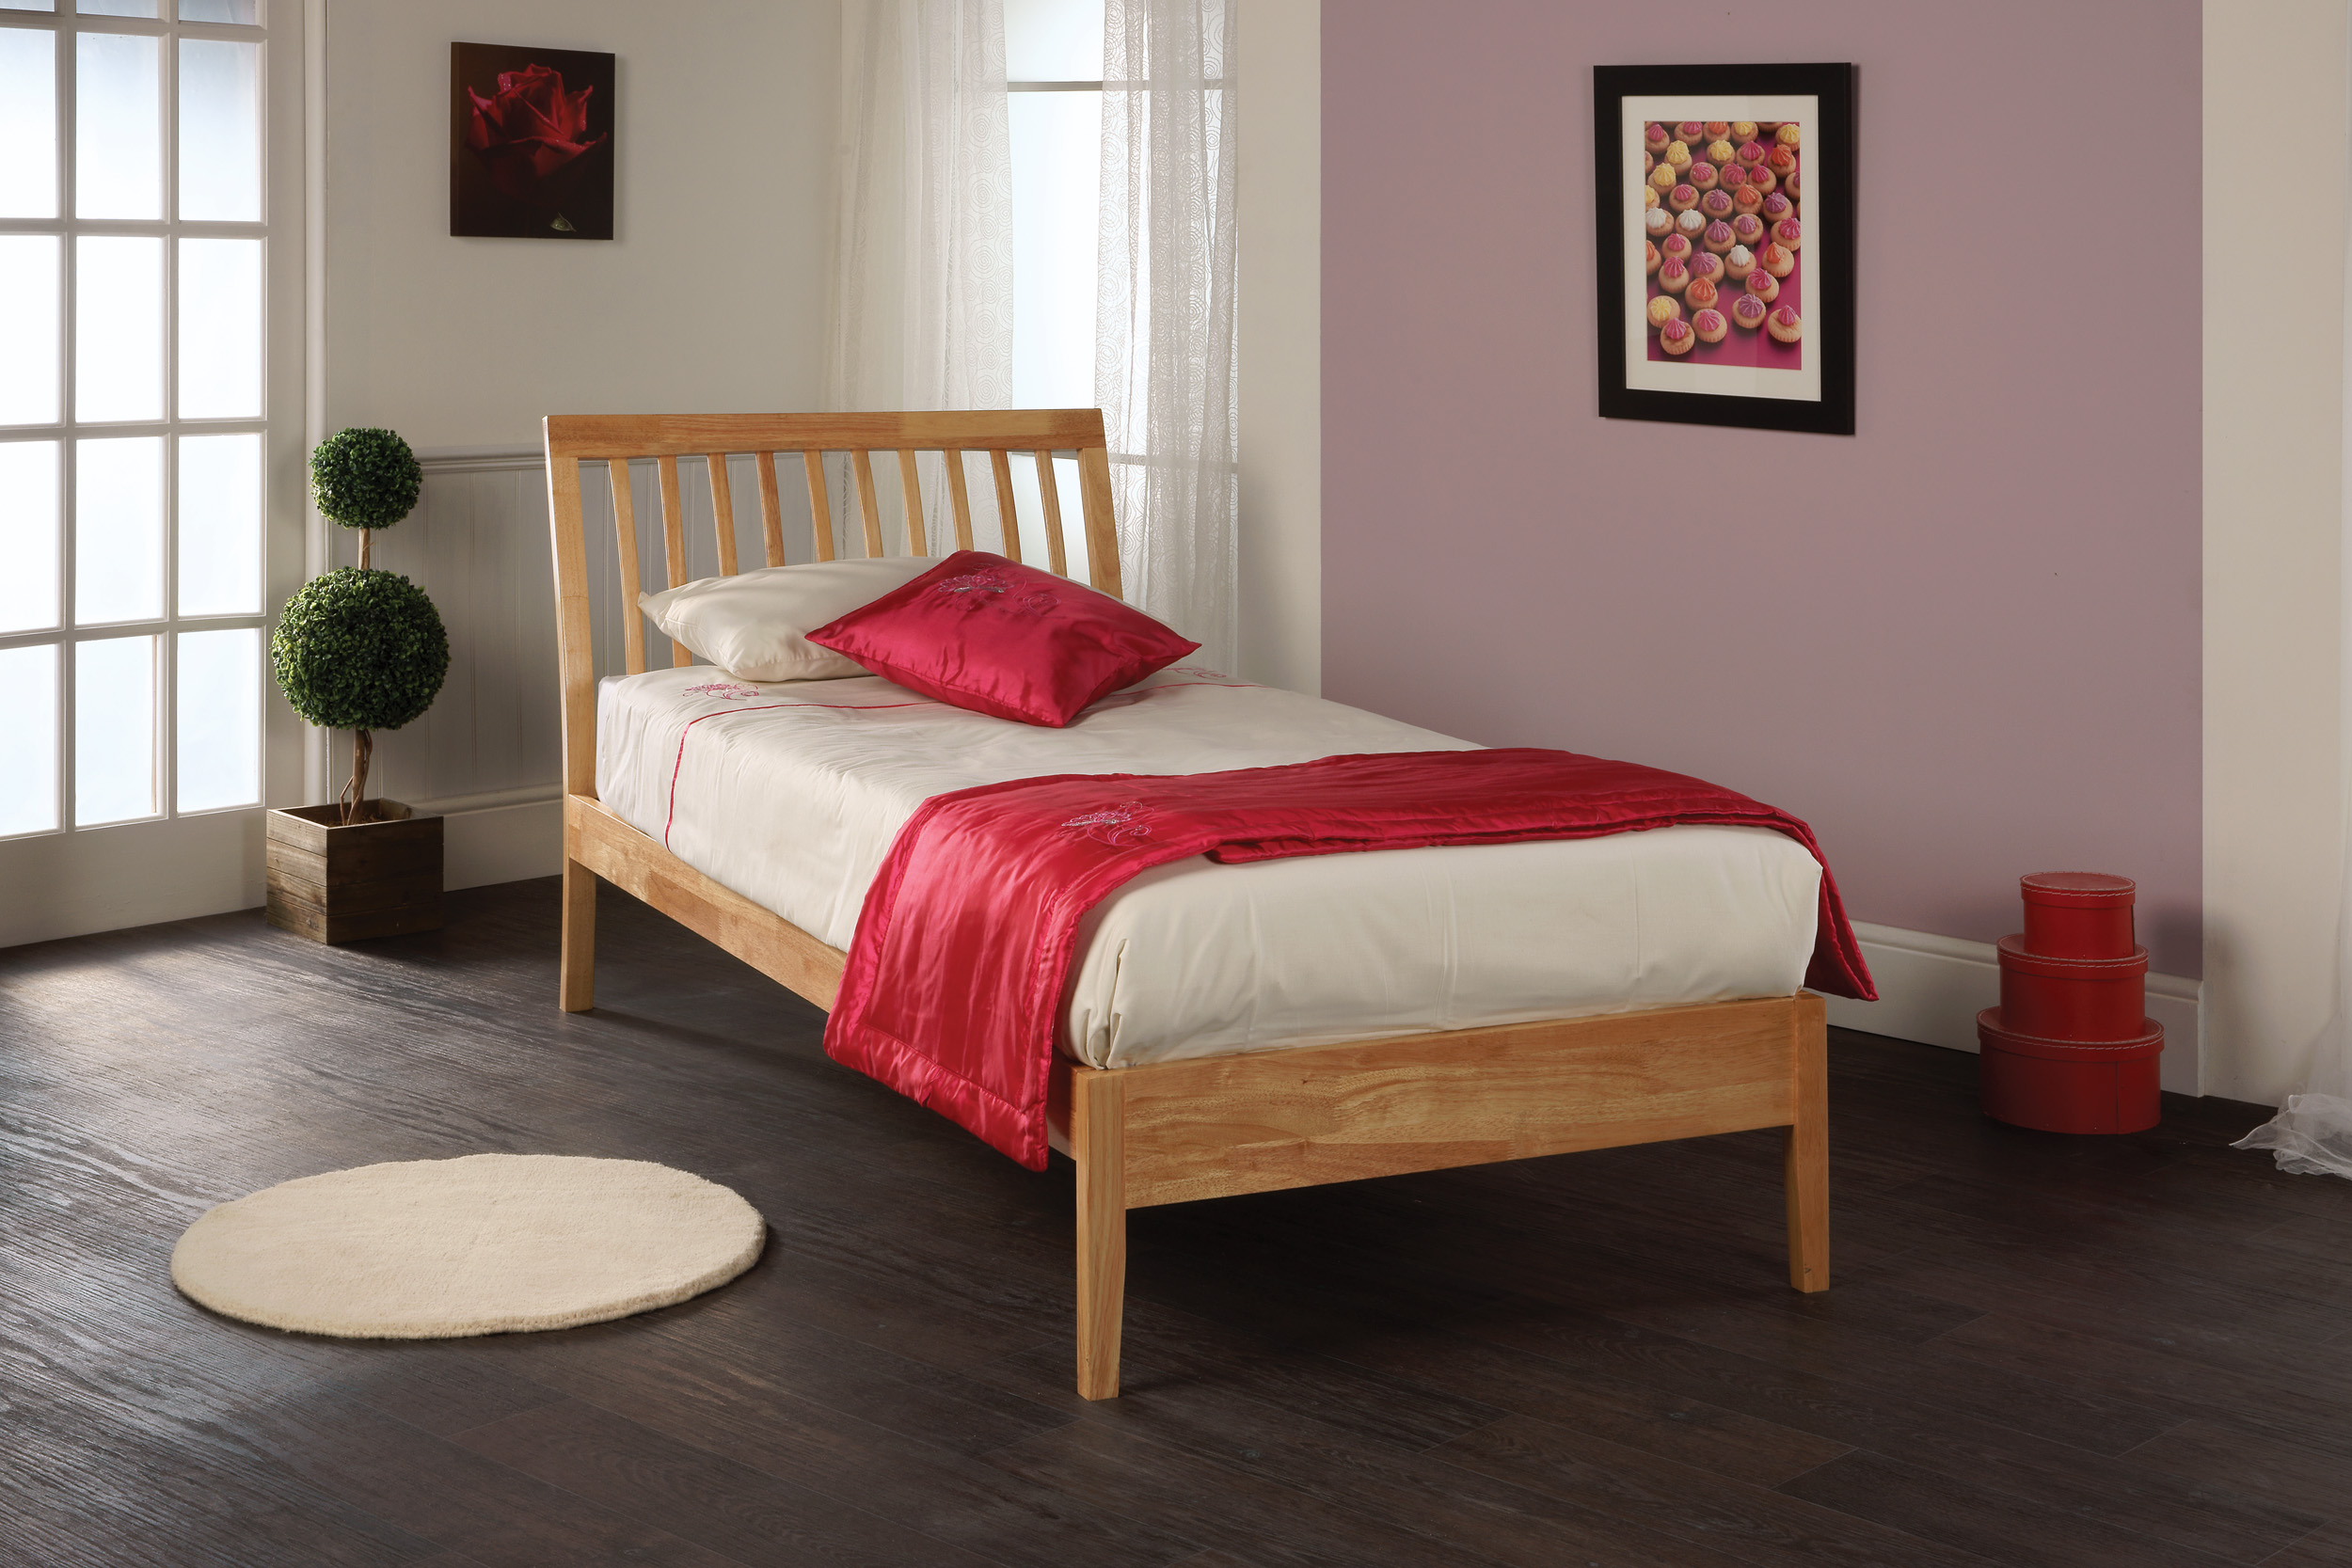 Beds for Small Bedrooms